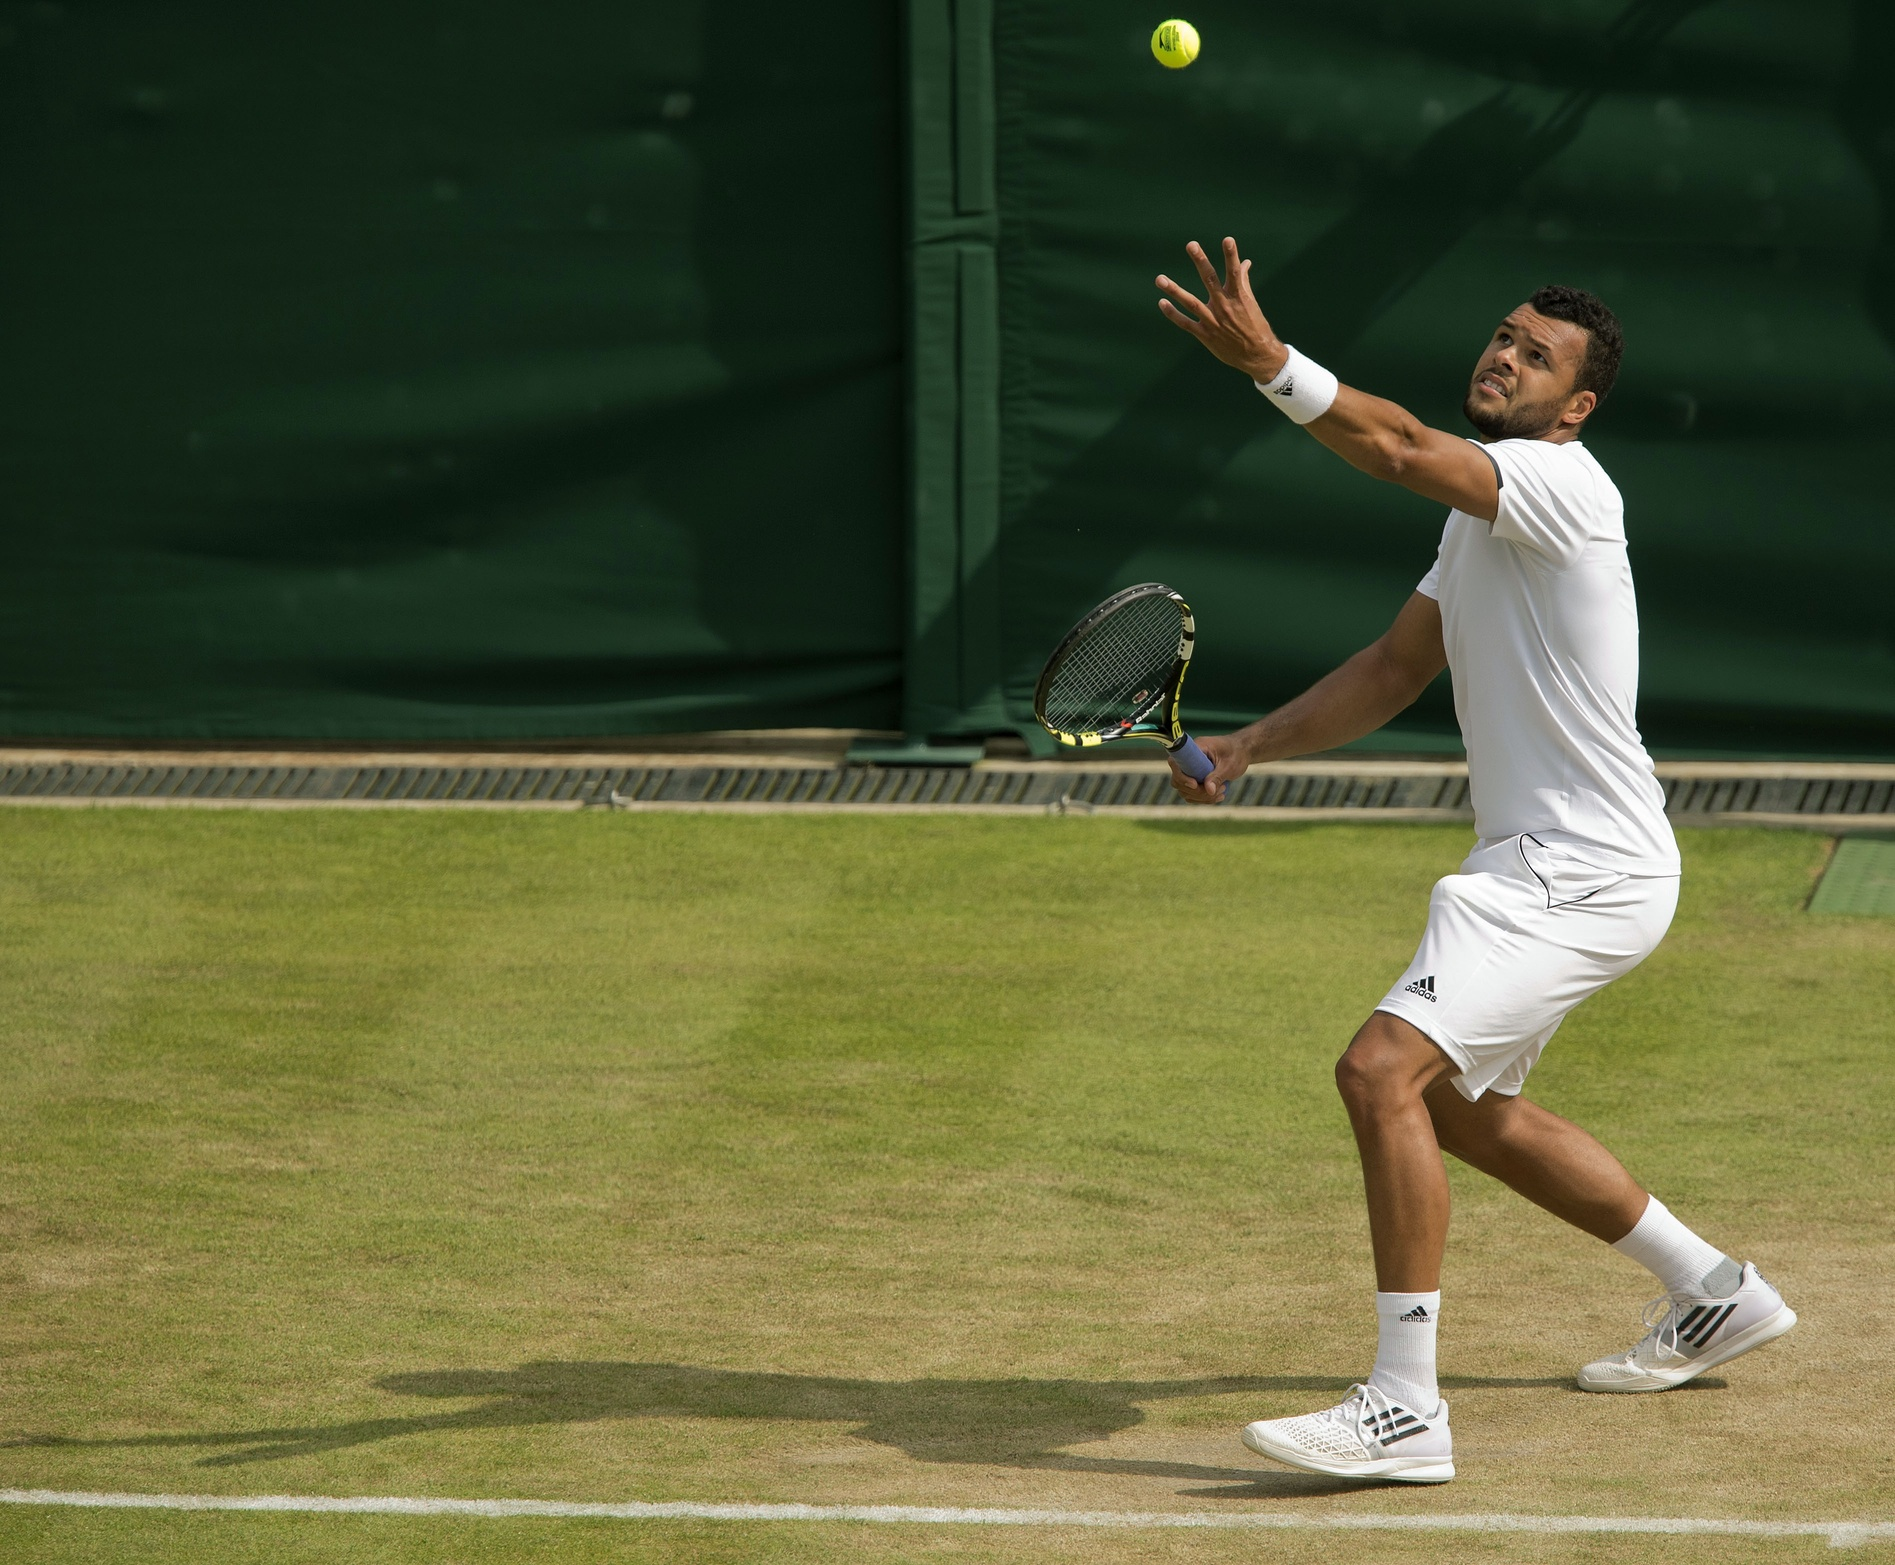 On To The Next One: Jo-Wilfried Tsonga